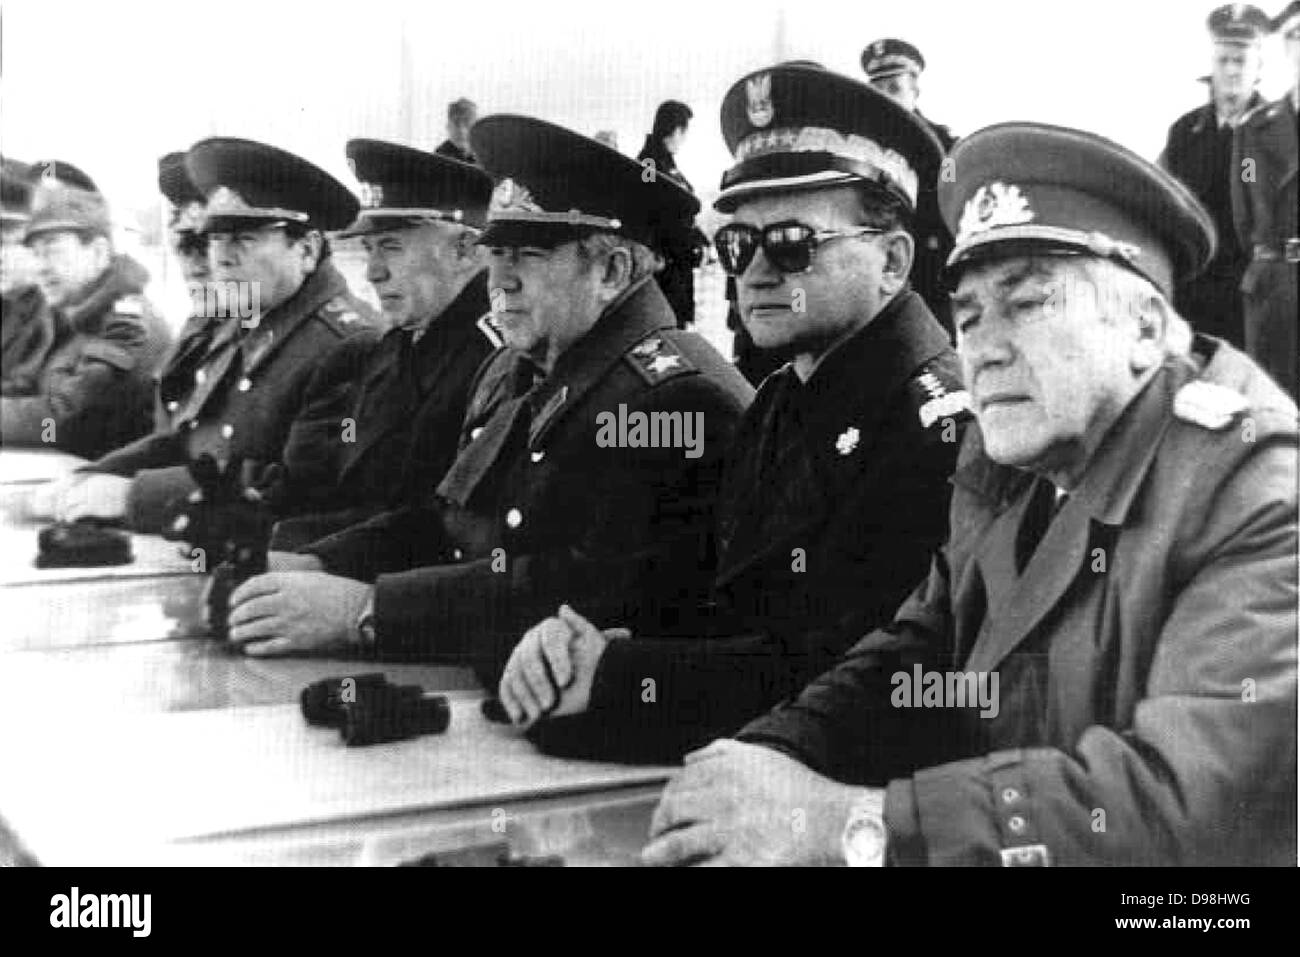 Wojciech Jaruzelski born 1923former Commander-in-chief of the communist Polish People's Army and the chairman - Stock Image